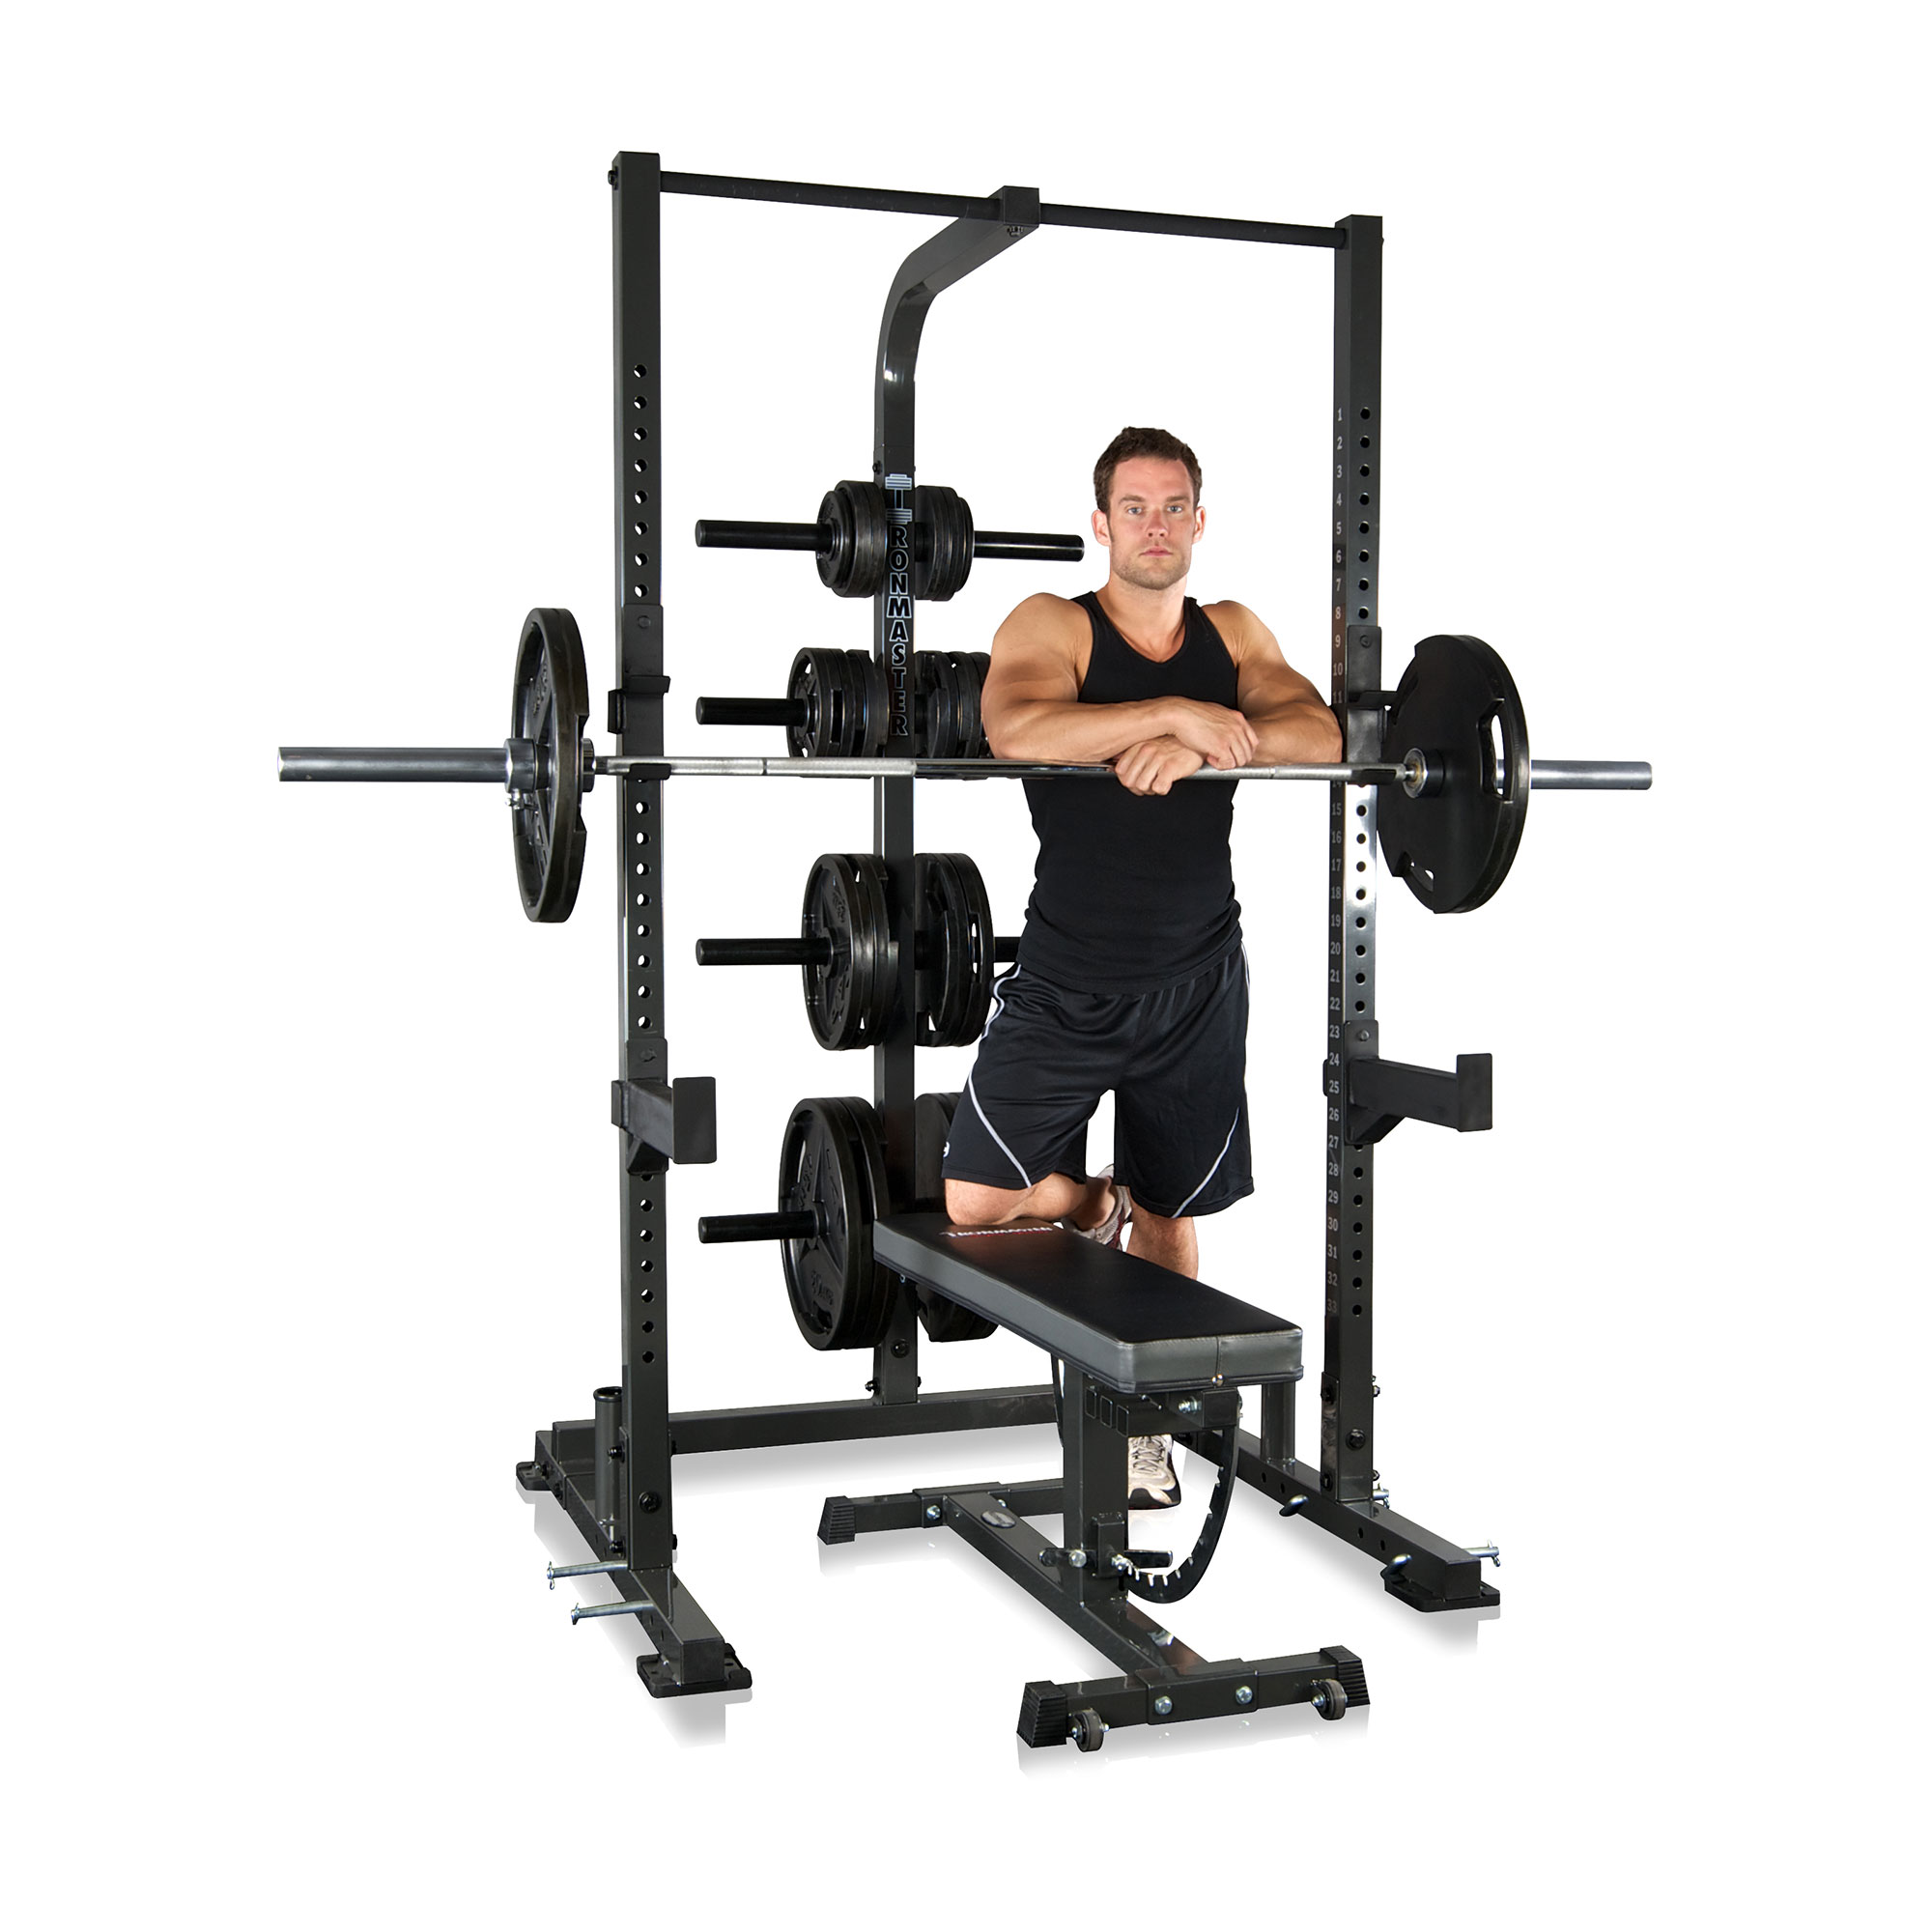 spsc img less storage crossfit diy or rack holder barbell for